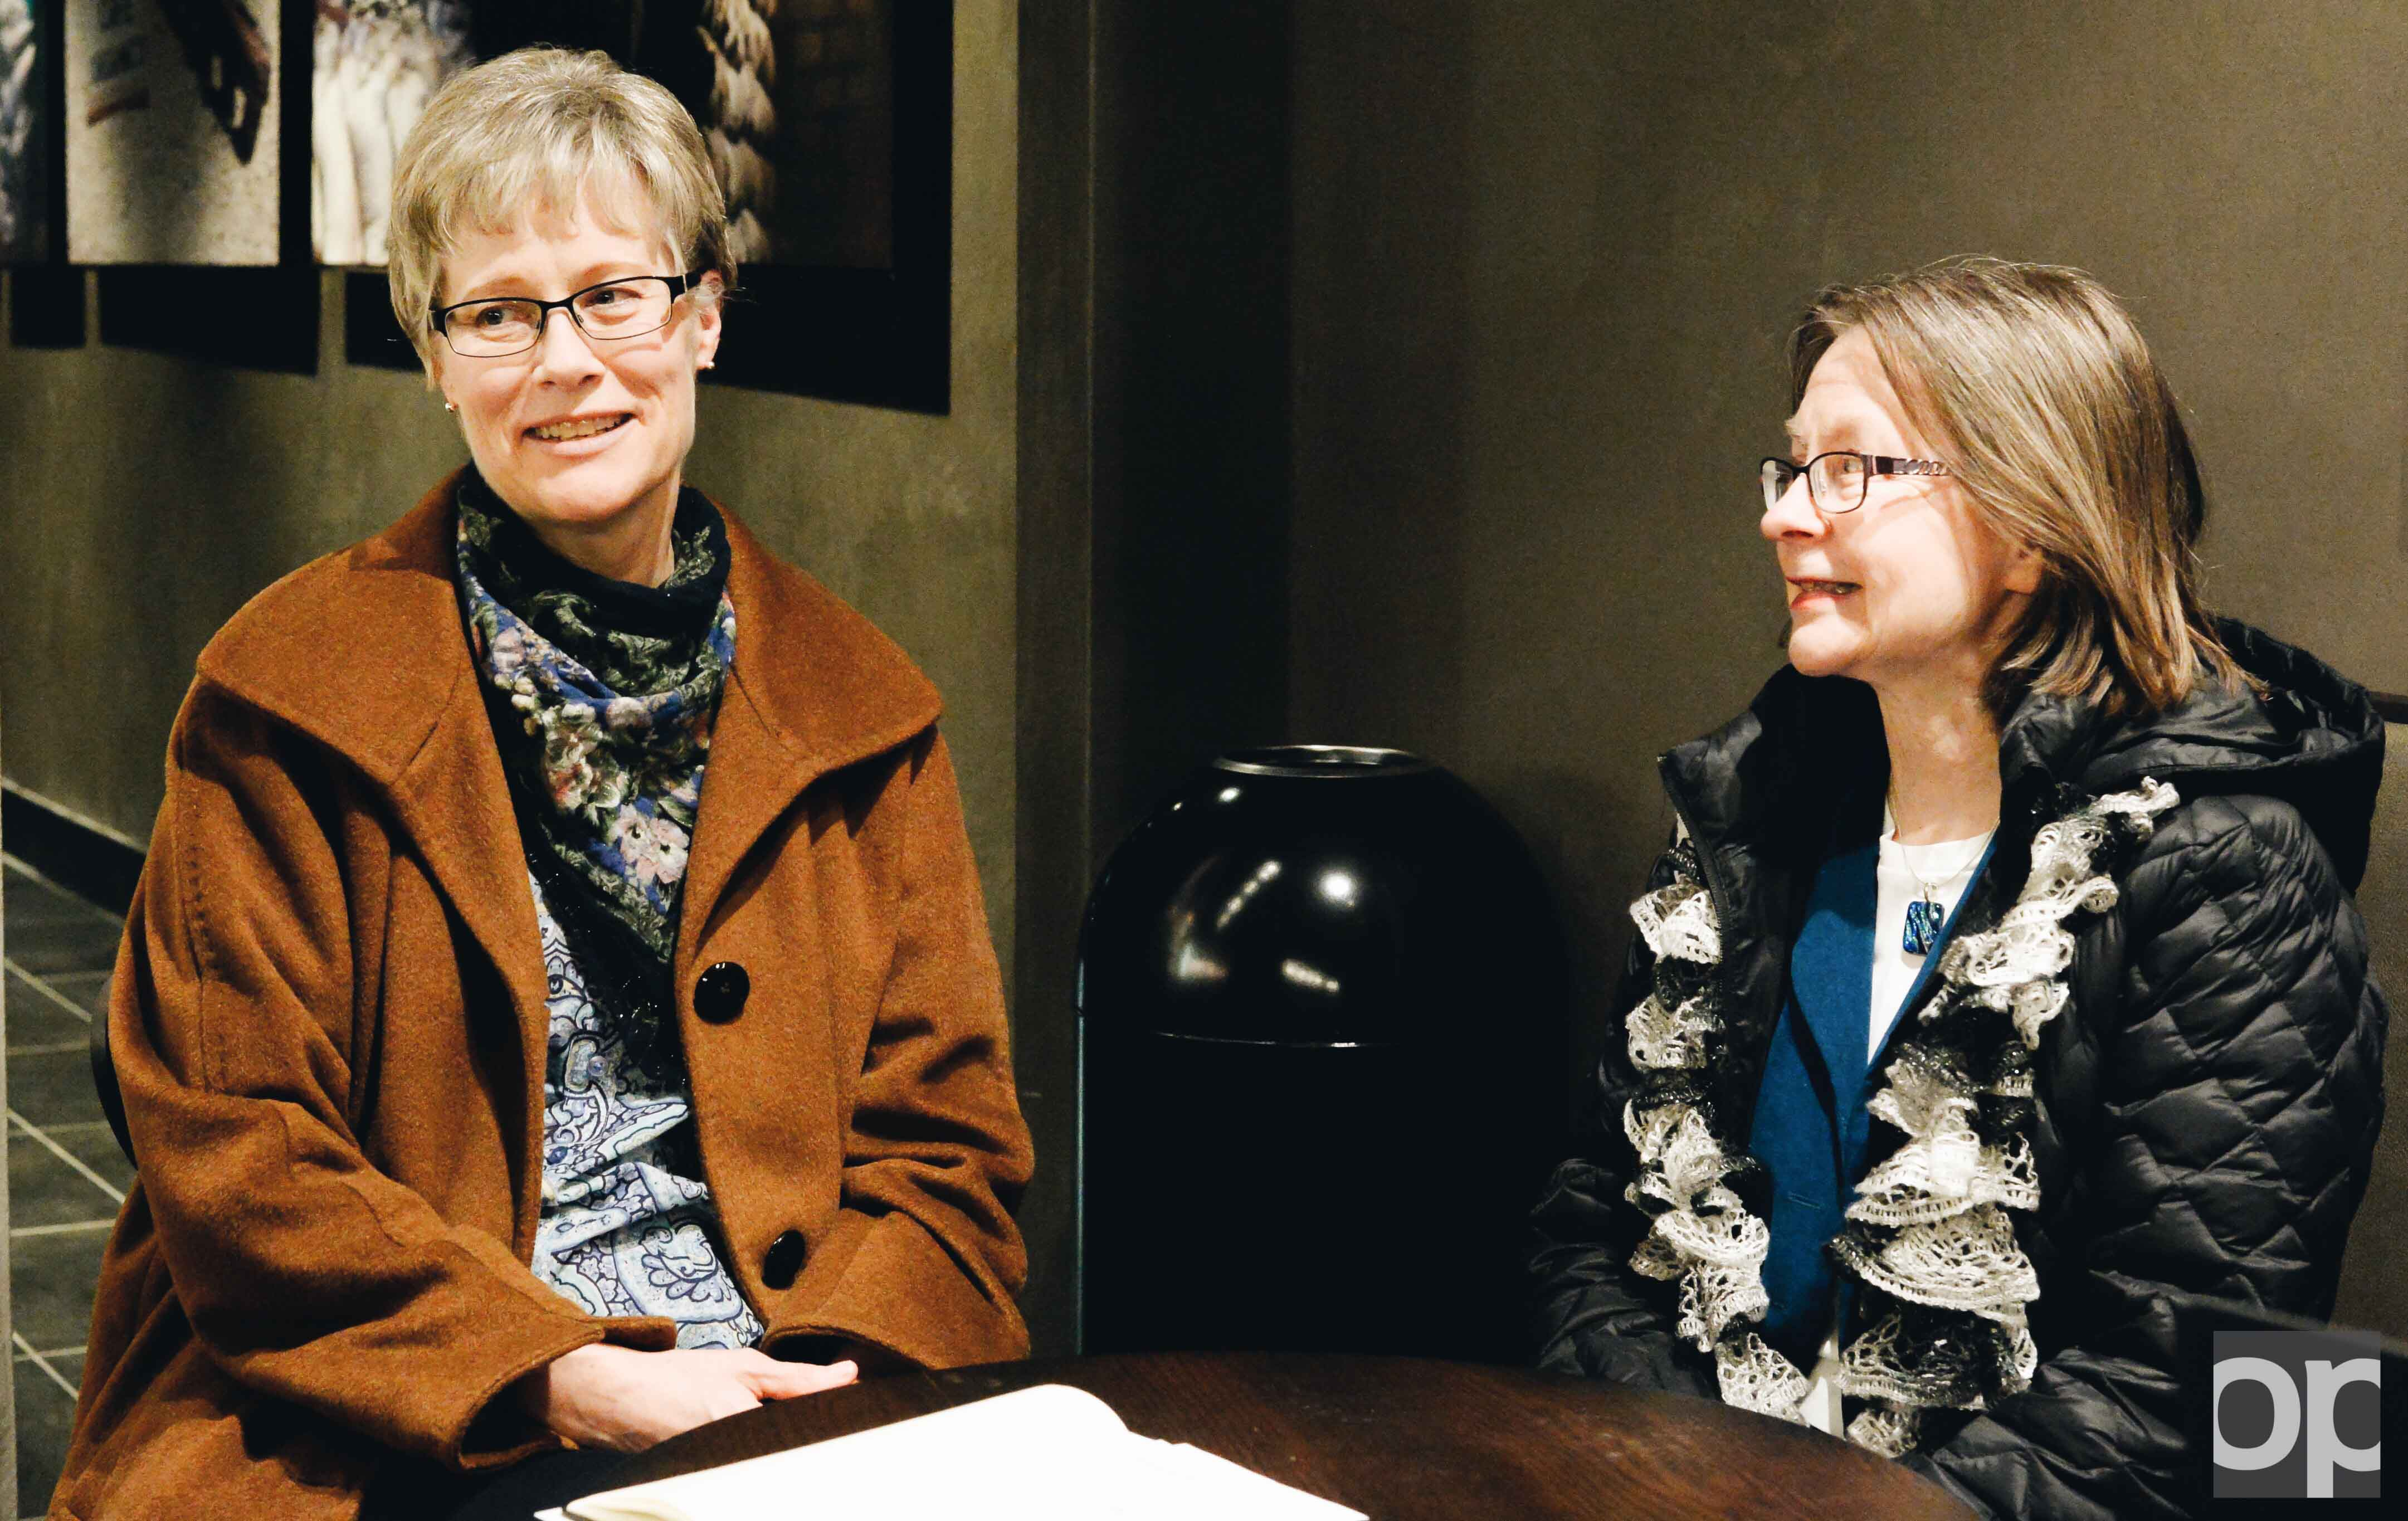 Jeni Carino (left) and Jo Ann Huebner are members of the American Business Women's Association.